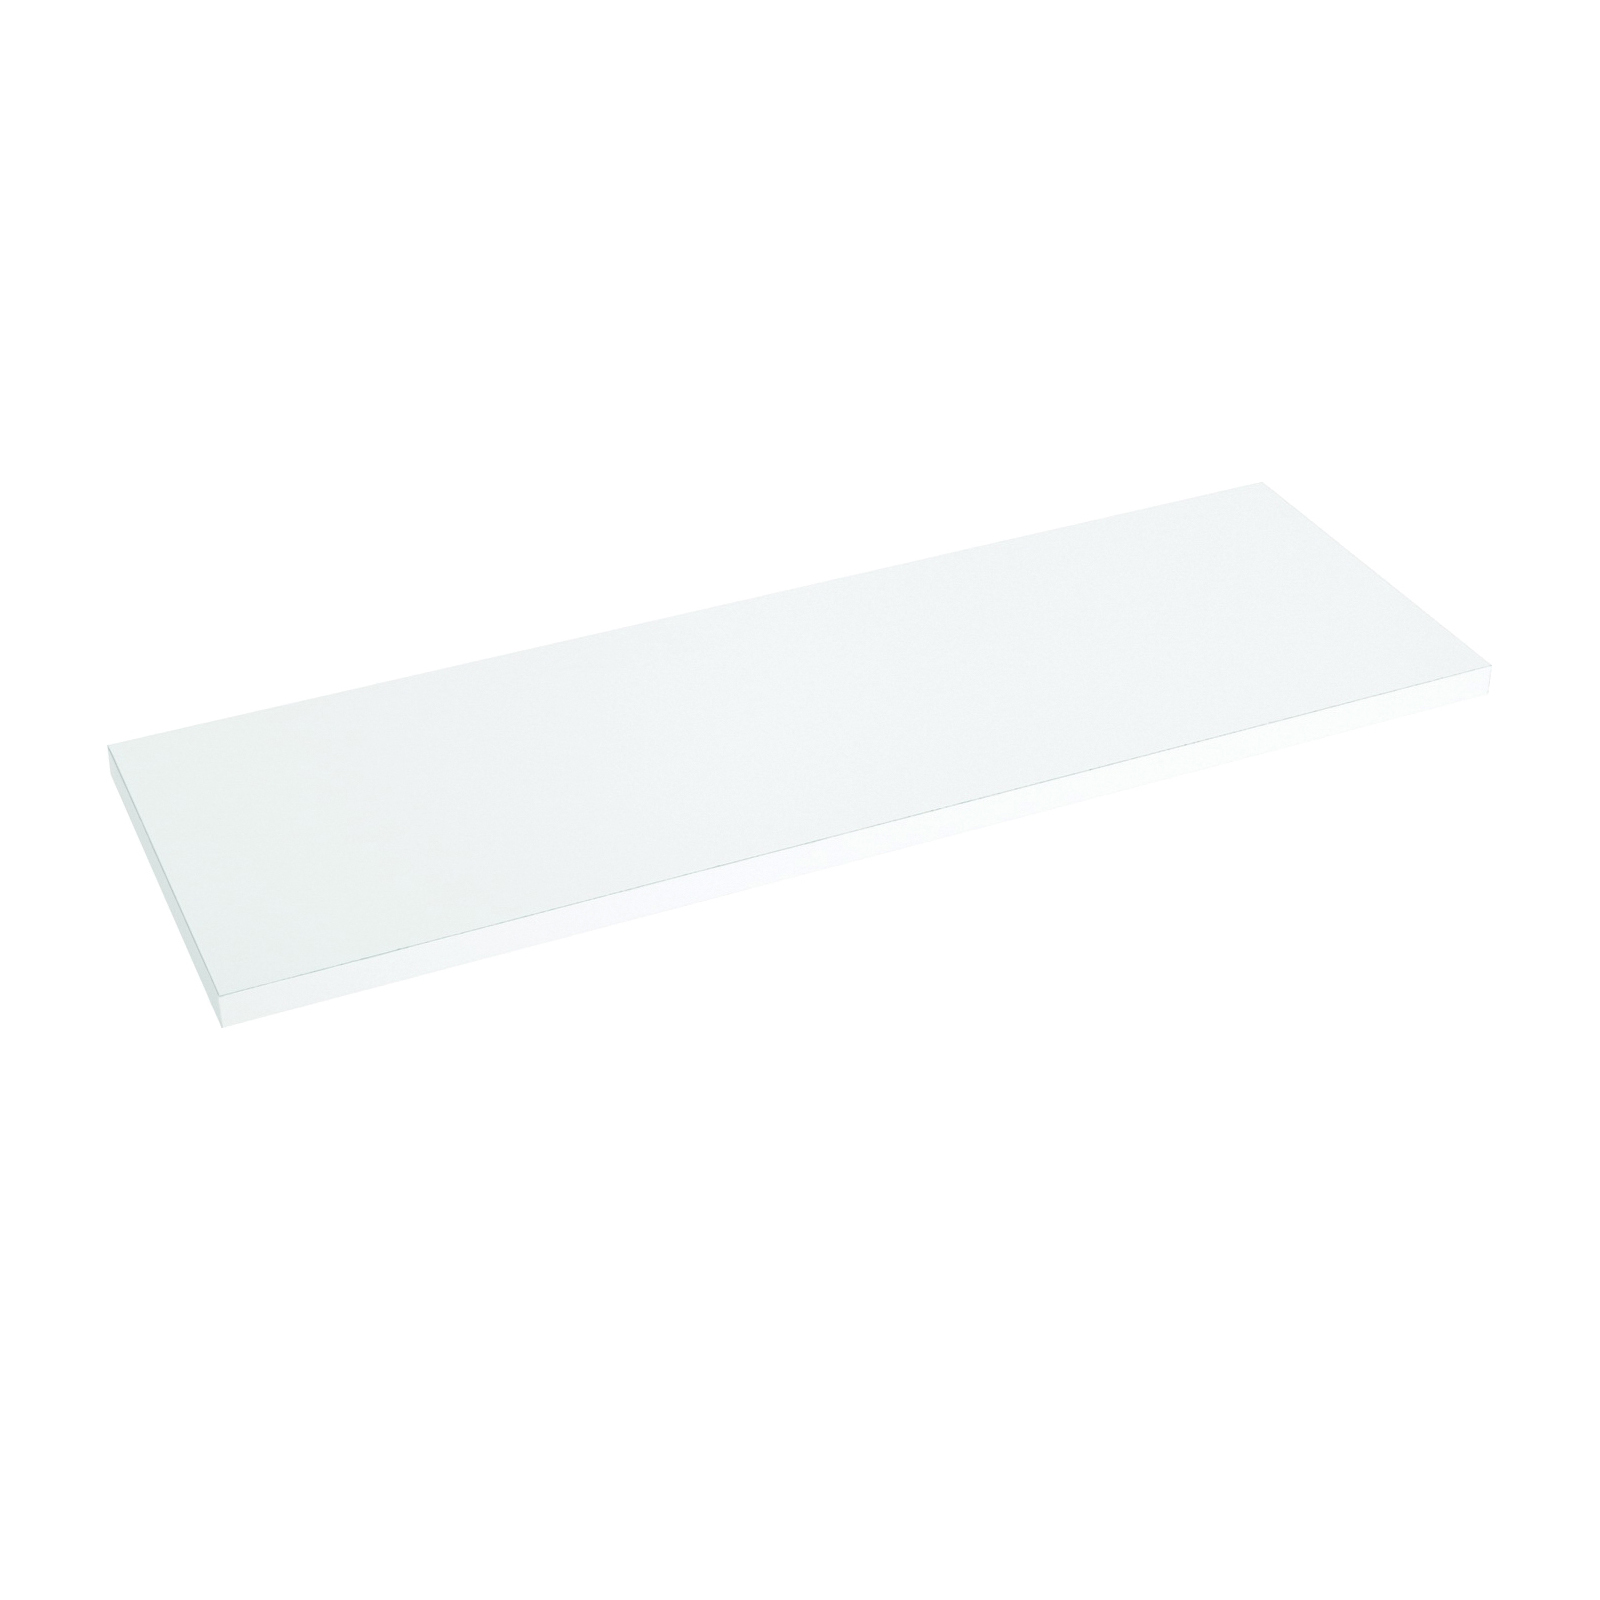 Picture of Knape & Vogt 1980 WH 8X48 Shelf Board, 200 lb, 5-Shelf, 48 in L, 8 in W, Particleboard